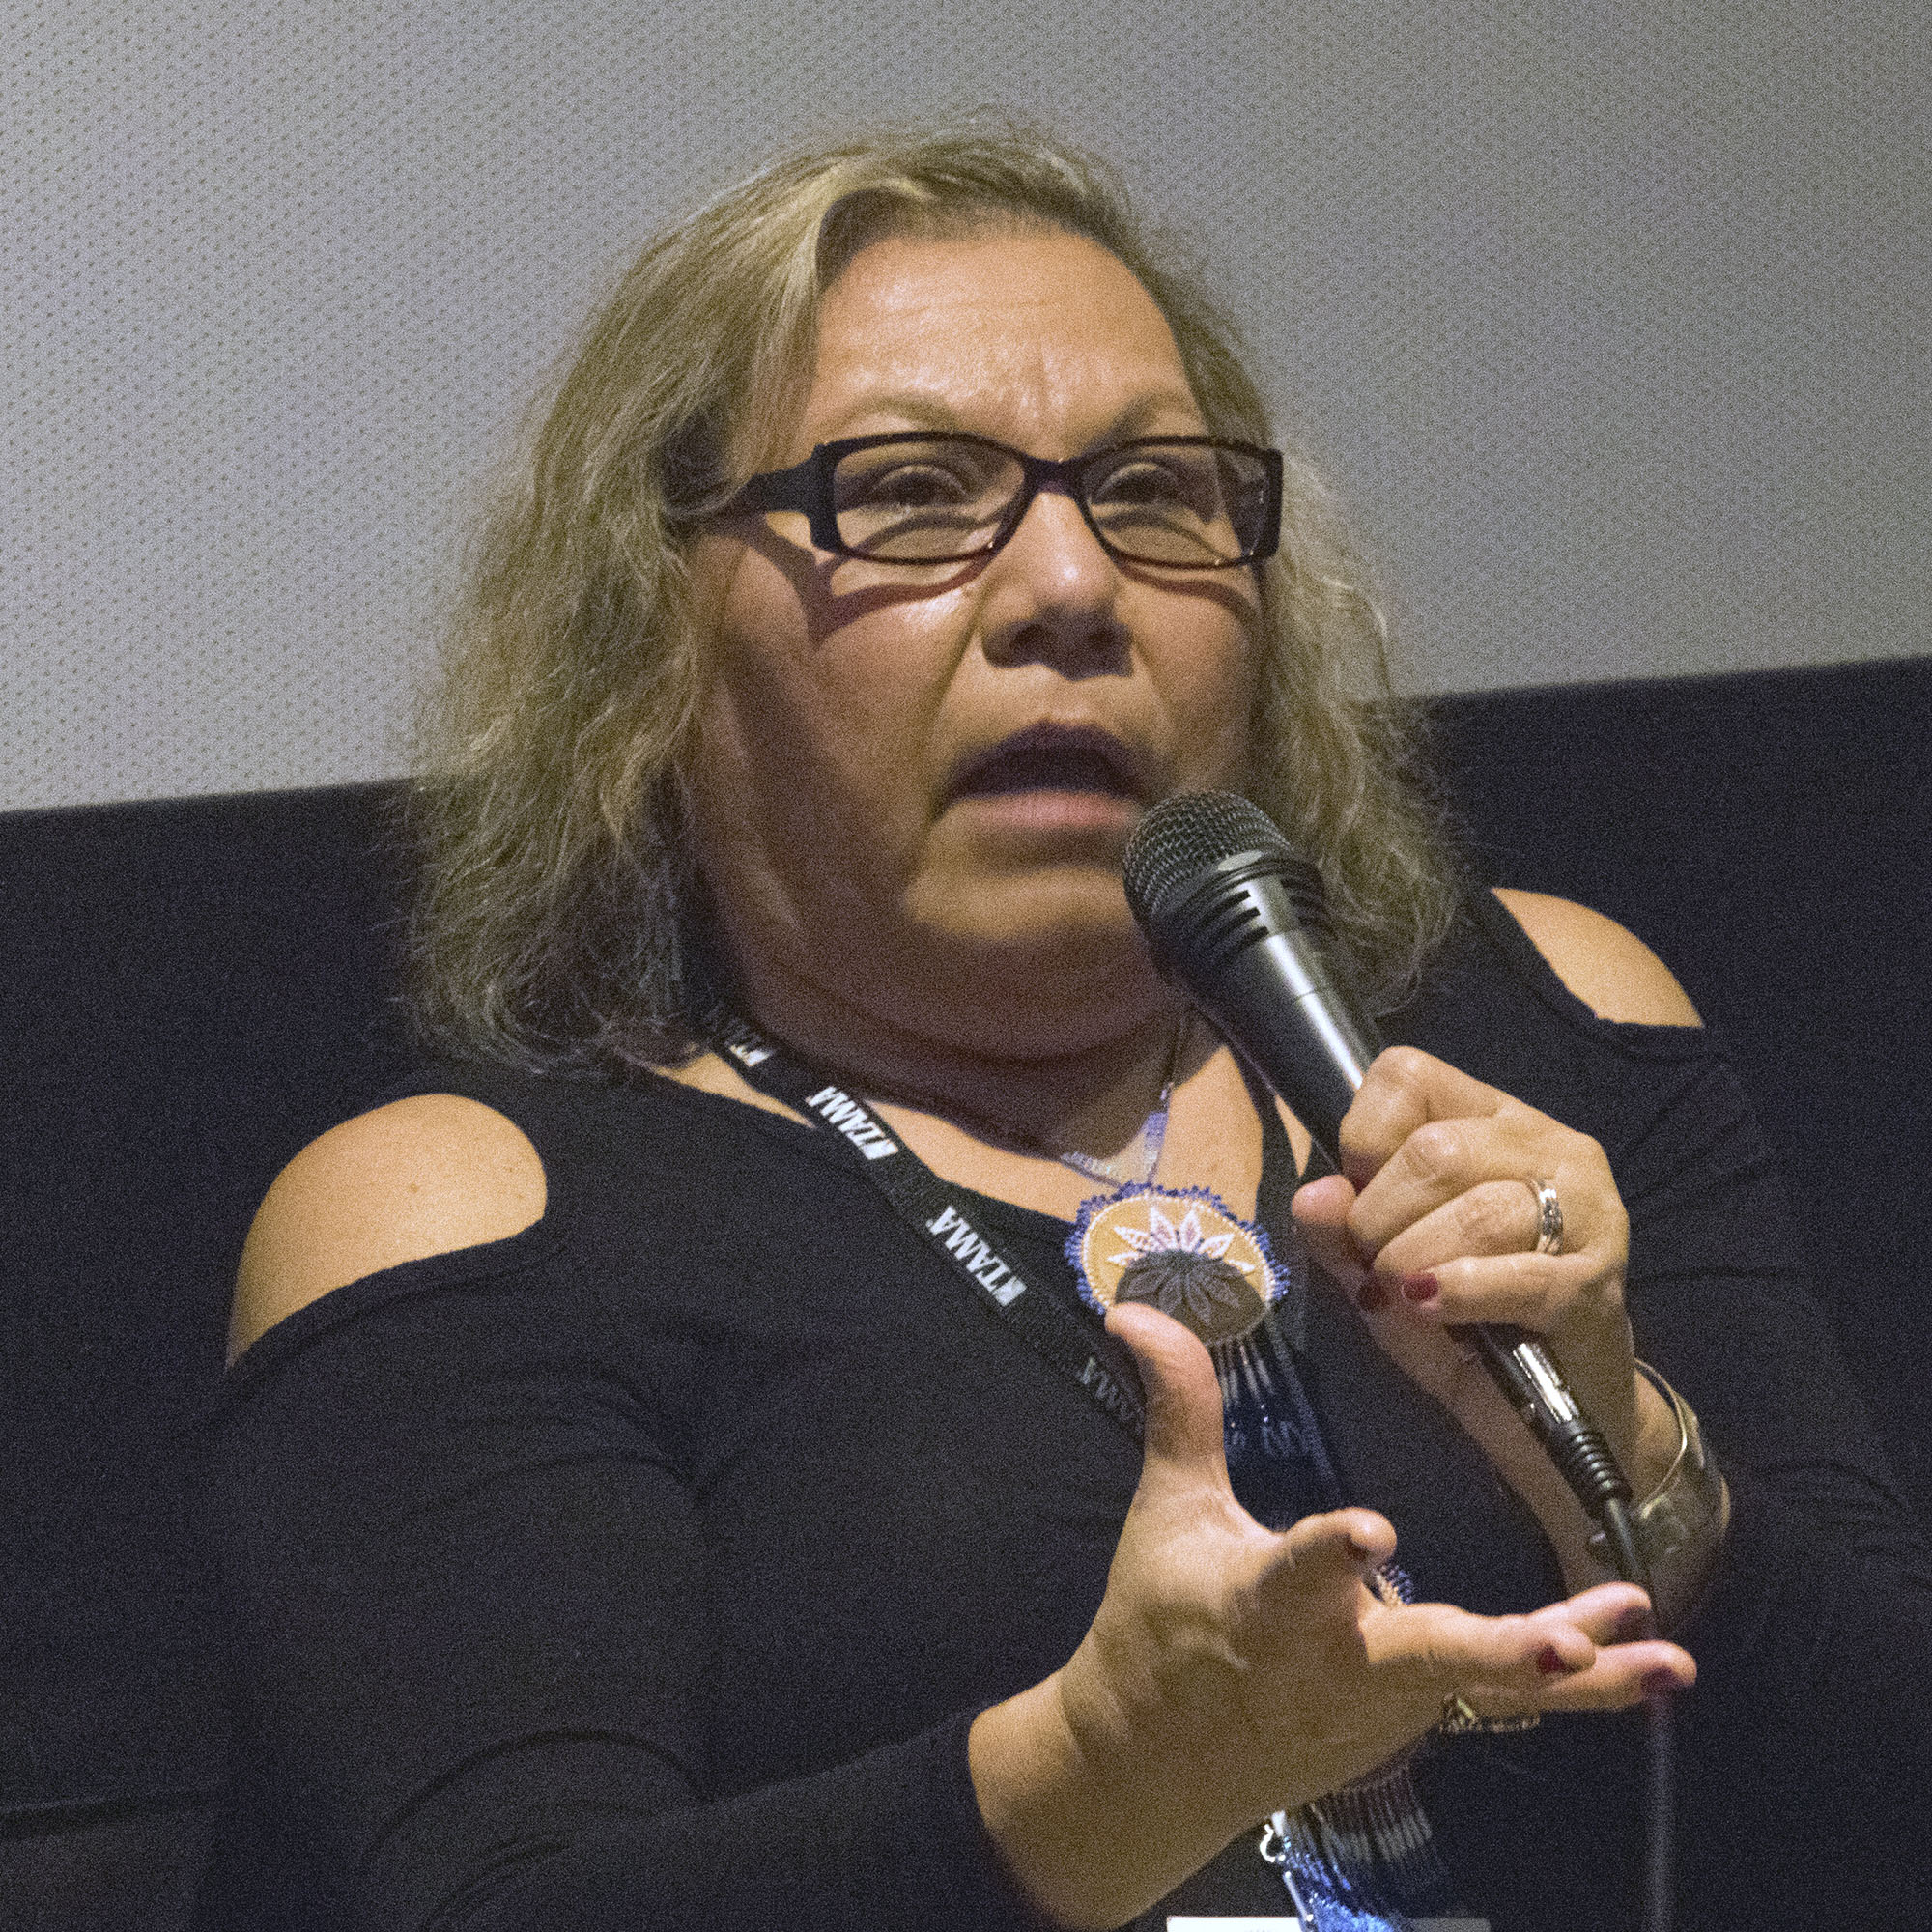 Red Nation Film Festival -NATIVES IN CHARGE OF THEIR NARRATIVE on Tuesday, November 14, 2017 at Laemele Monica Film Center Screening of Open Season (short) and Wind River. Tunica-Biloxi Tribe - Lisa Hope Heth